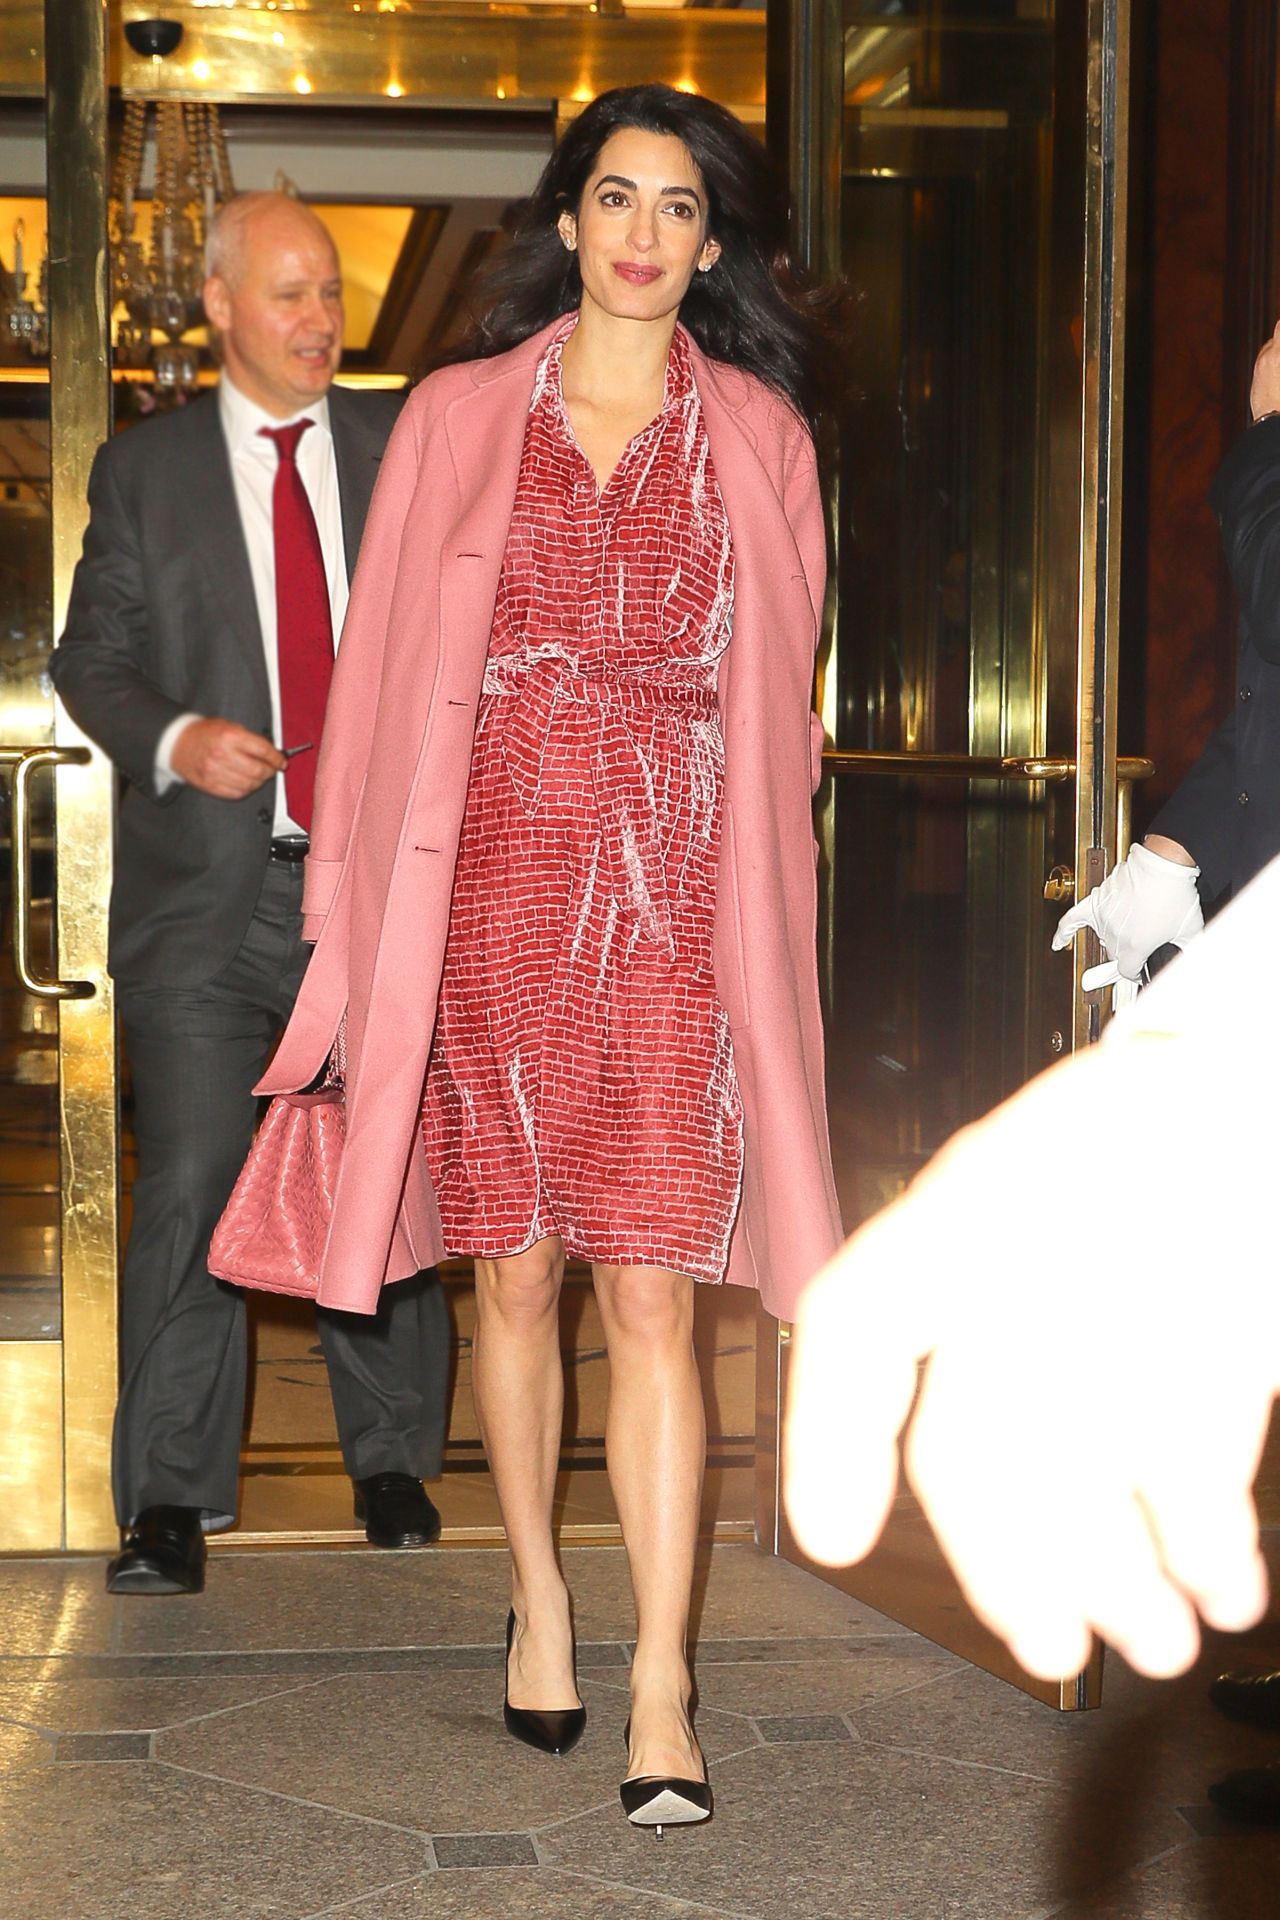 Pregnant Amal Clooney Is Pretty In Pink Chic In Black